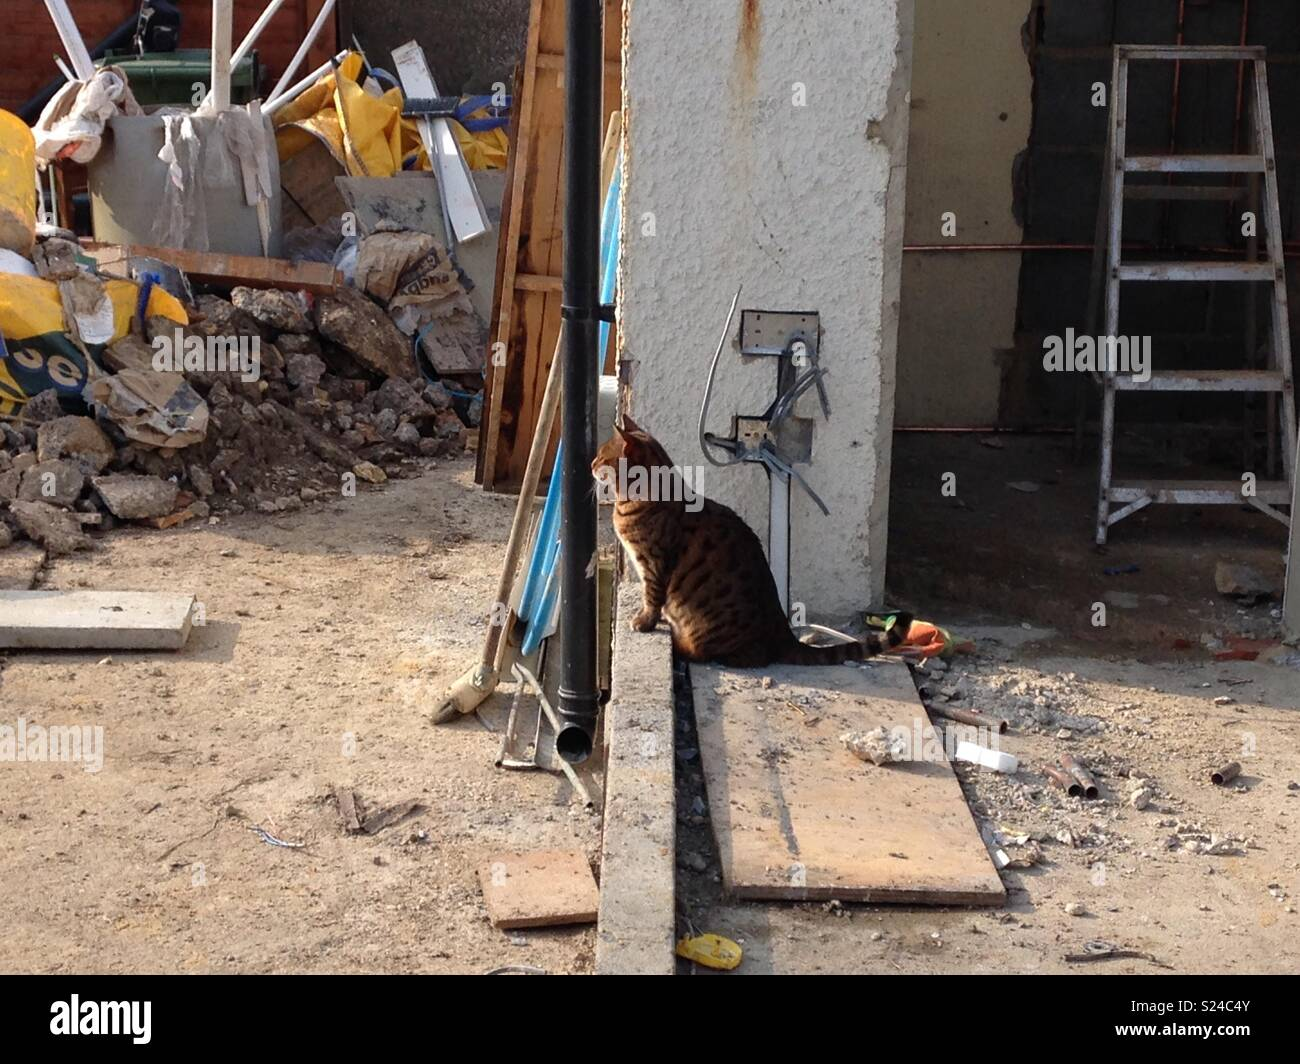 Bengal cat overlooking construction work like a foreman - Stock Image